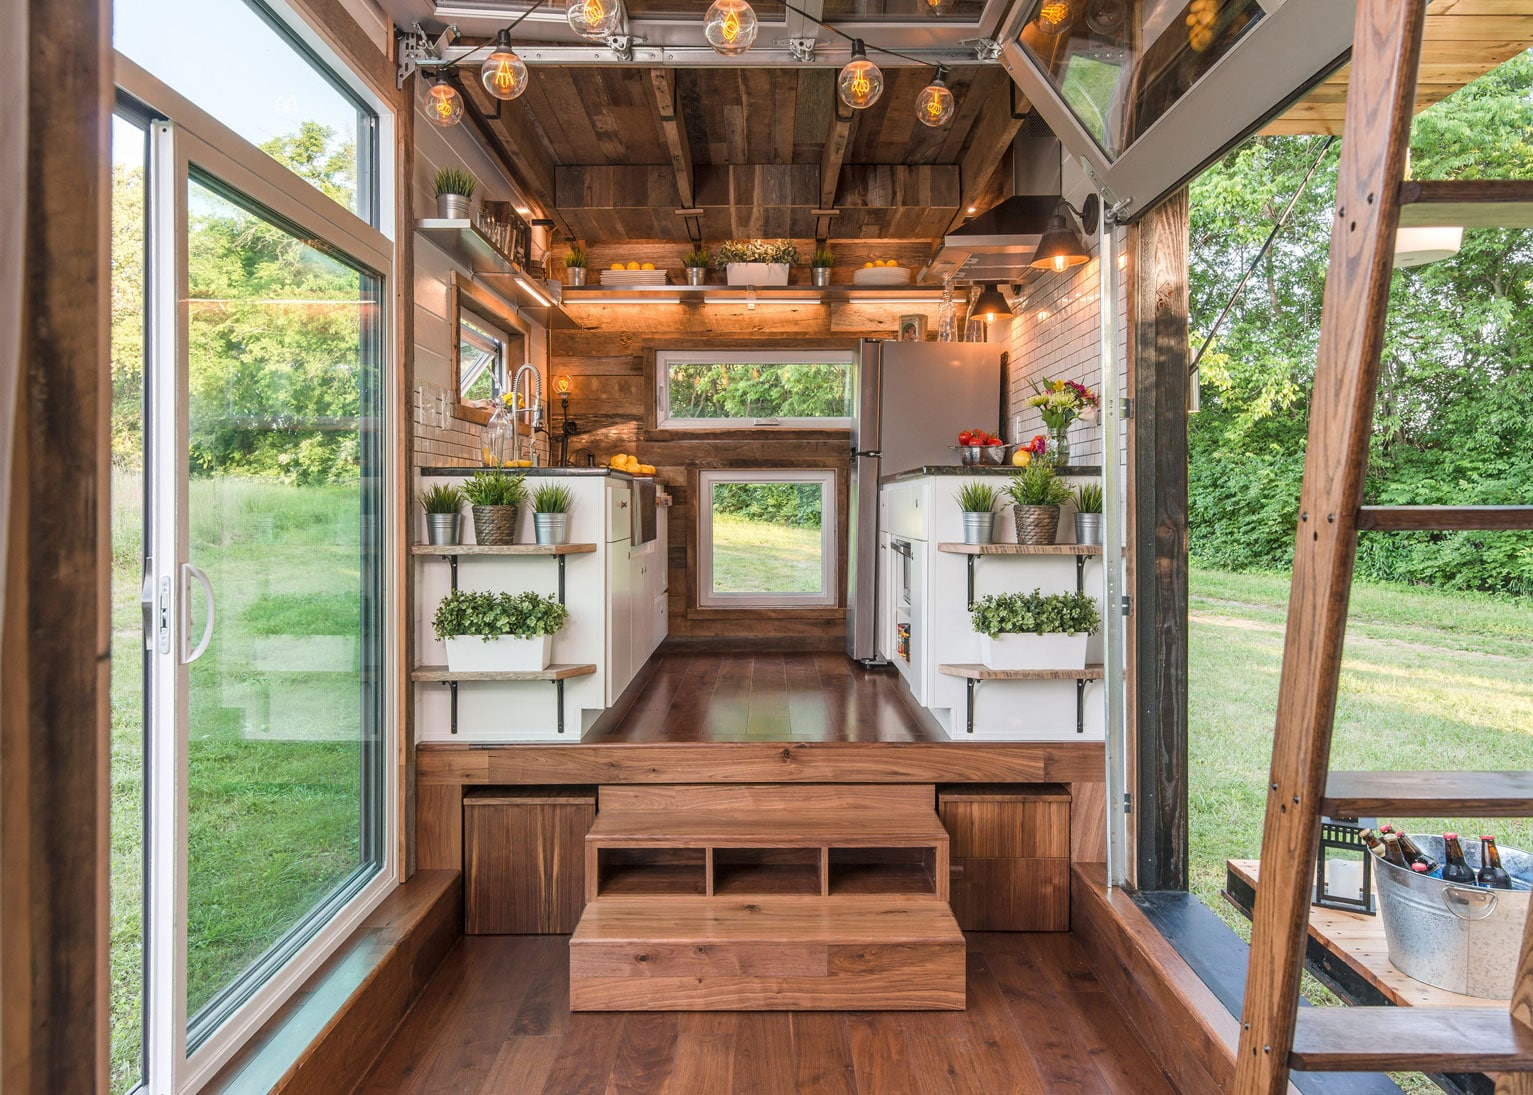 The alpha tiny home review ireviews for New small homes